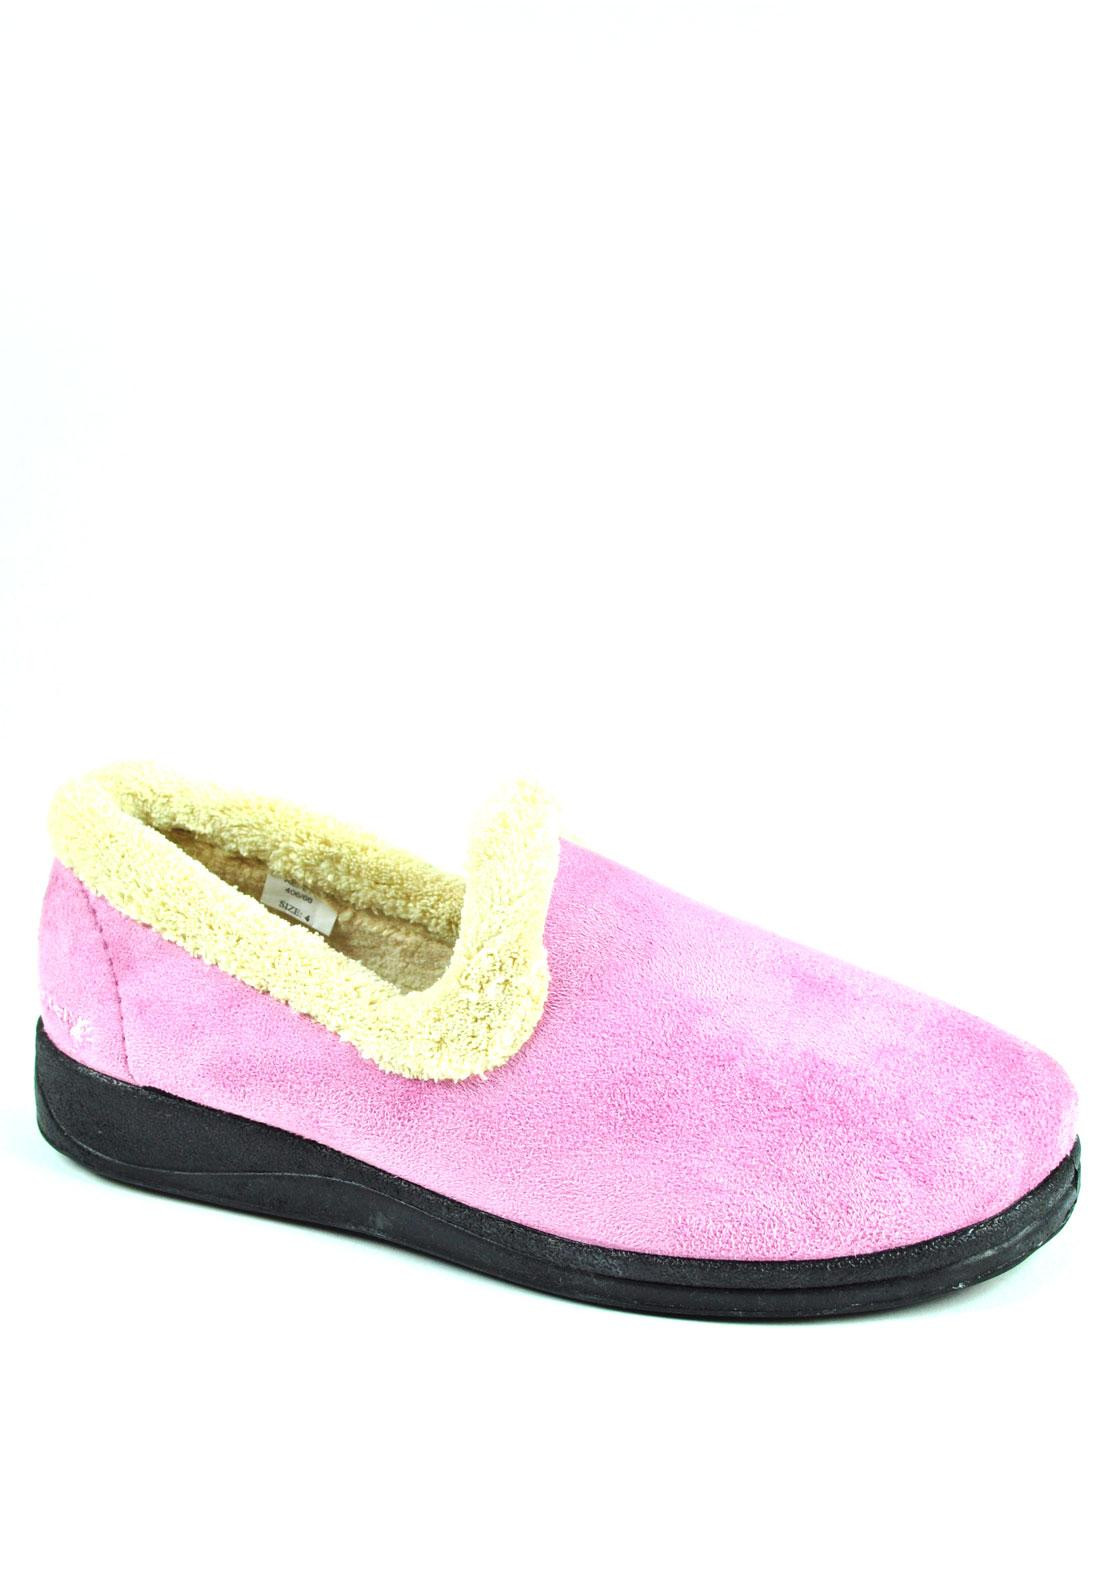 Padders Women's Repose Slippers, Dusty Pink